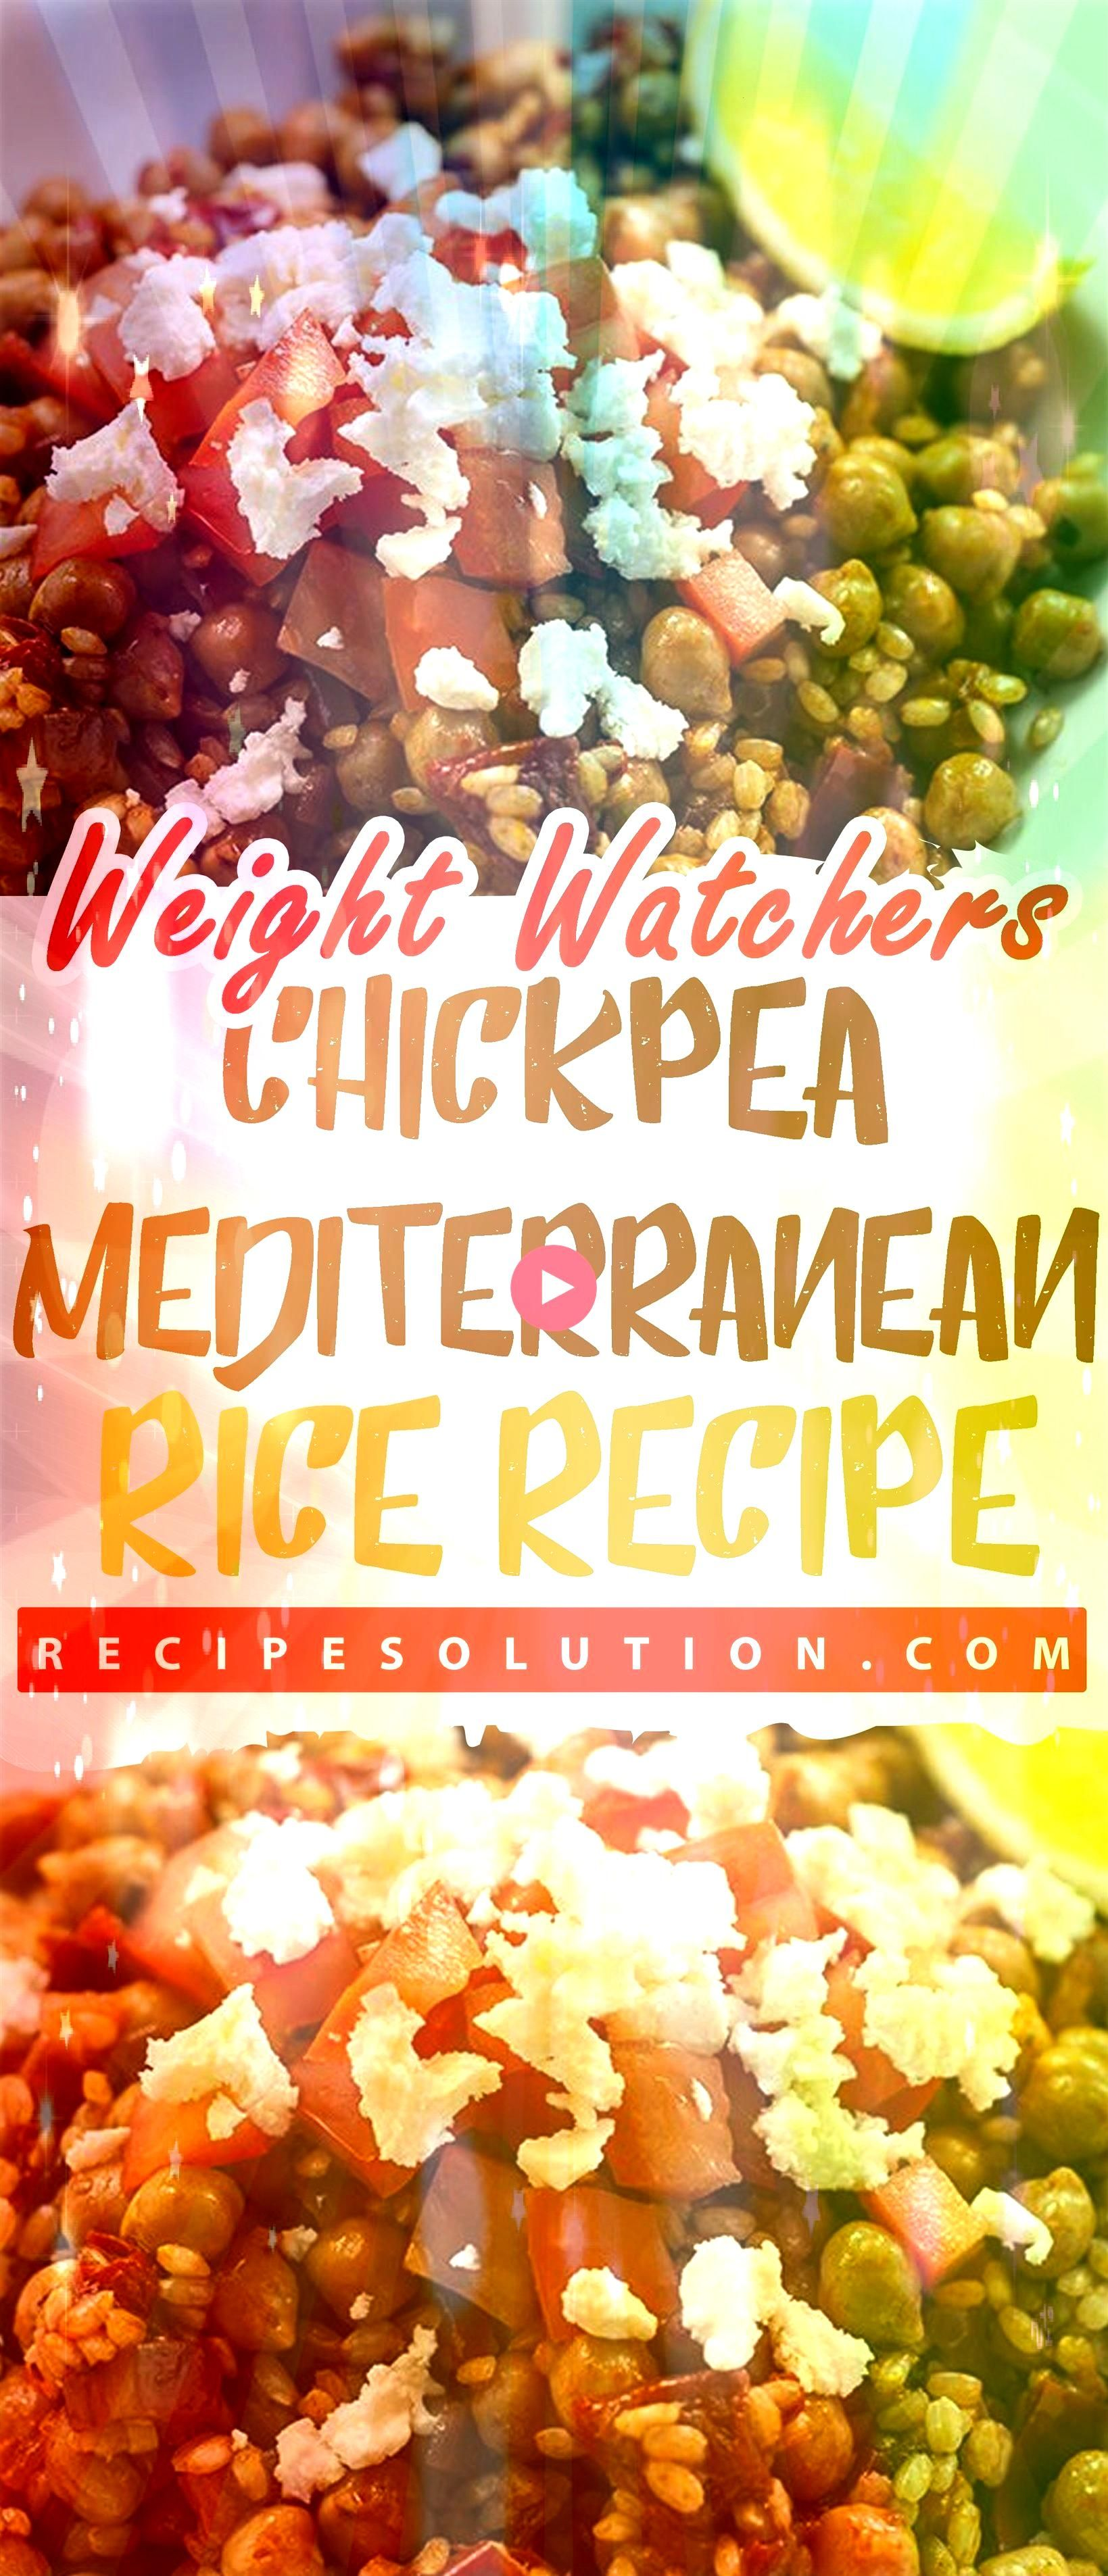 Mediterranean Rice Recipe  Recipe SOLUTION 9 SMARTPOINTS  The road to healthy eating is easy with these Healthicious recipes makes it easy and enjoyable to eat well and f...